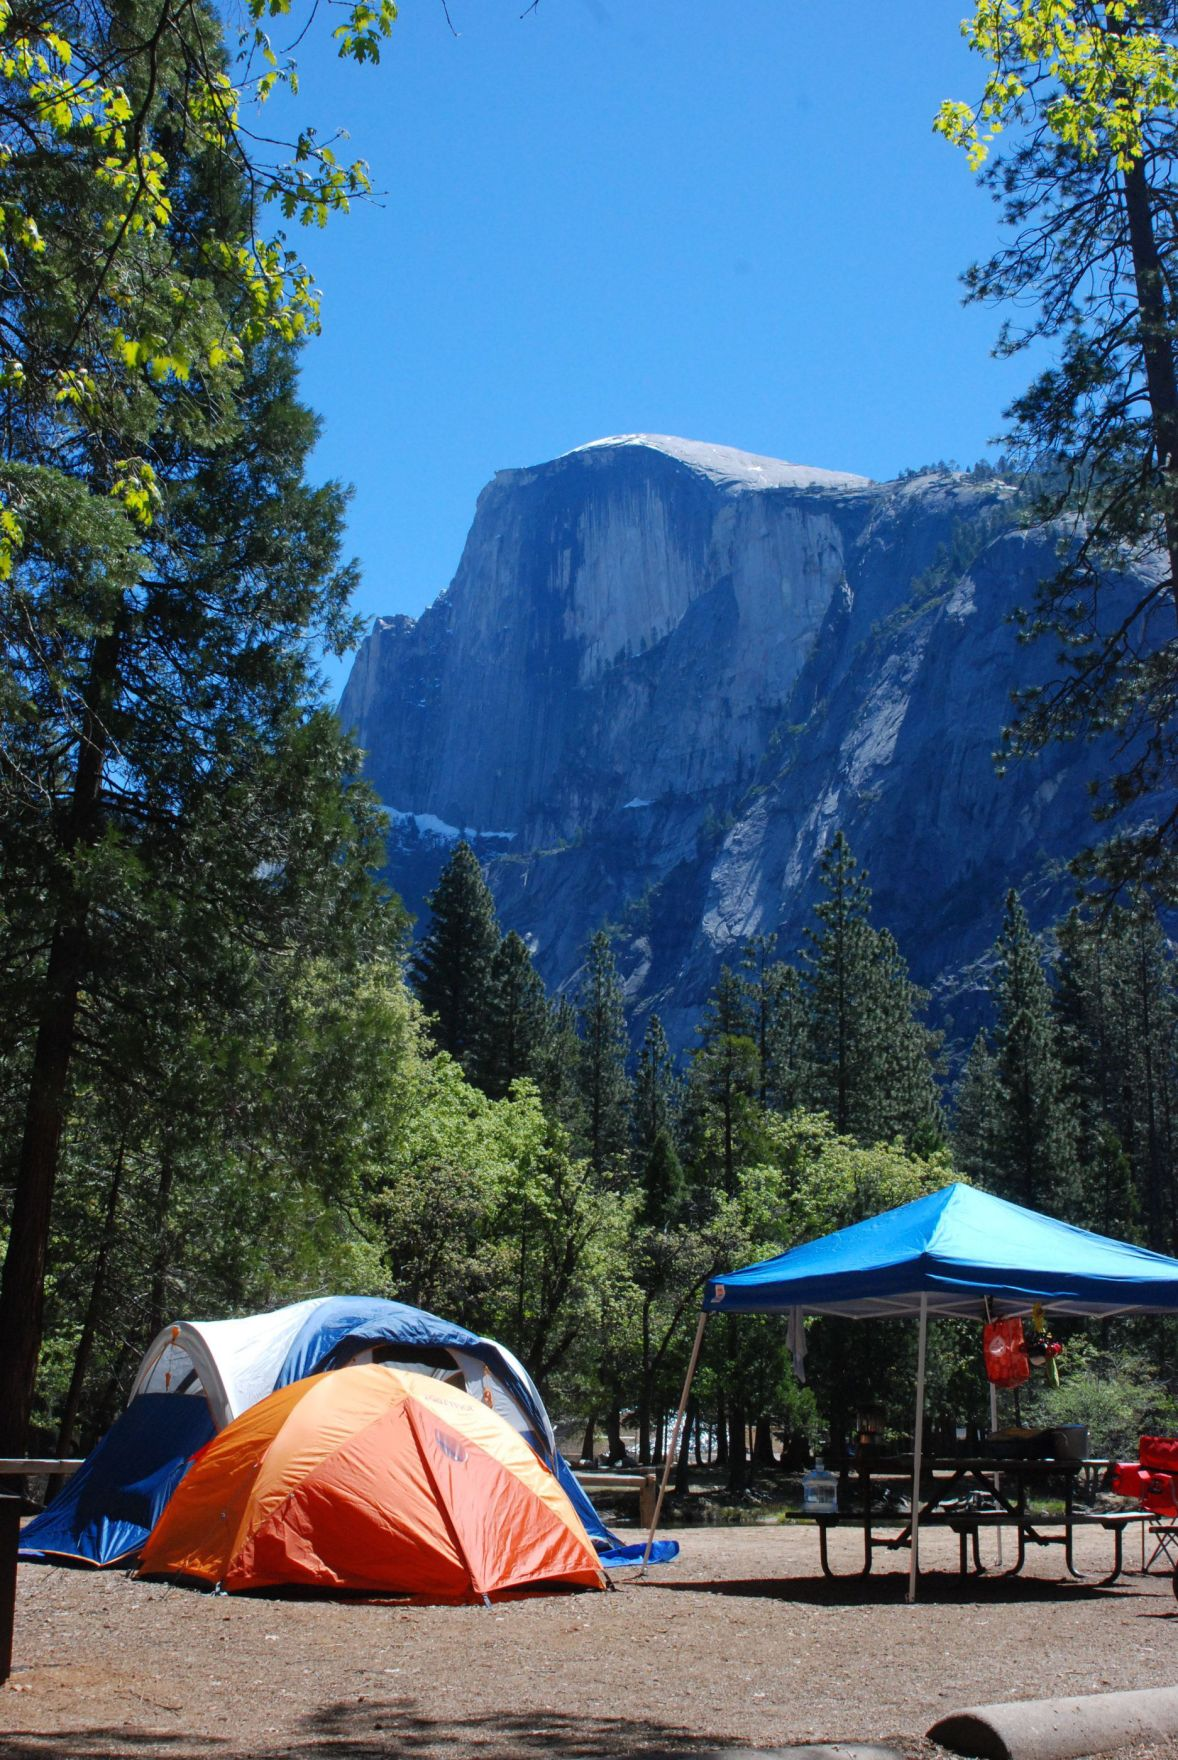 Afraid to camp? Nothing to fear but fear itself